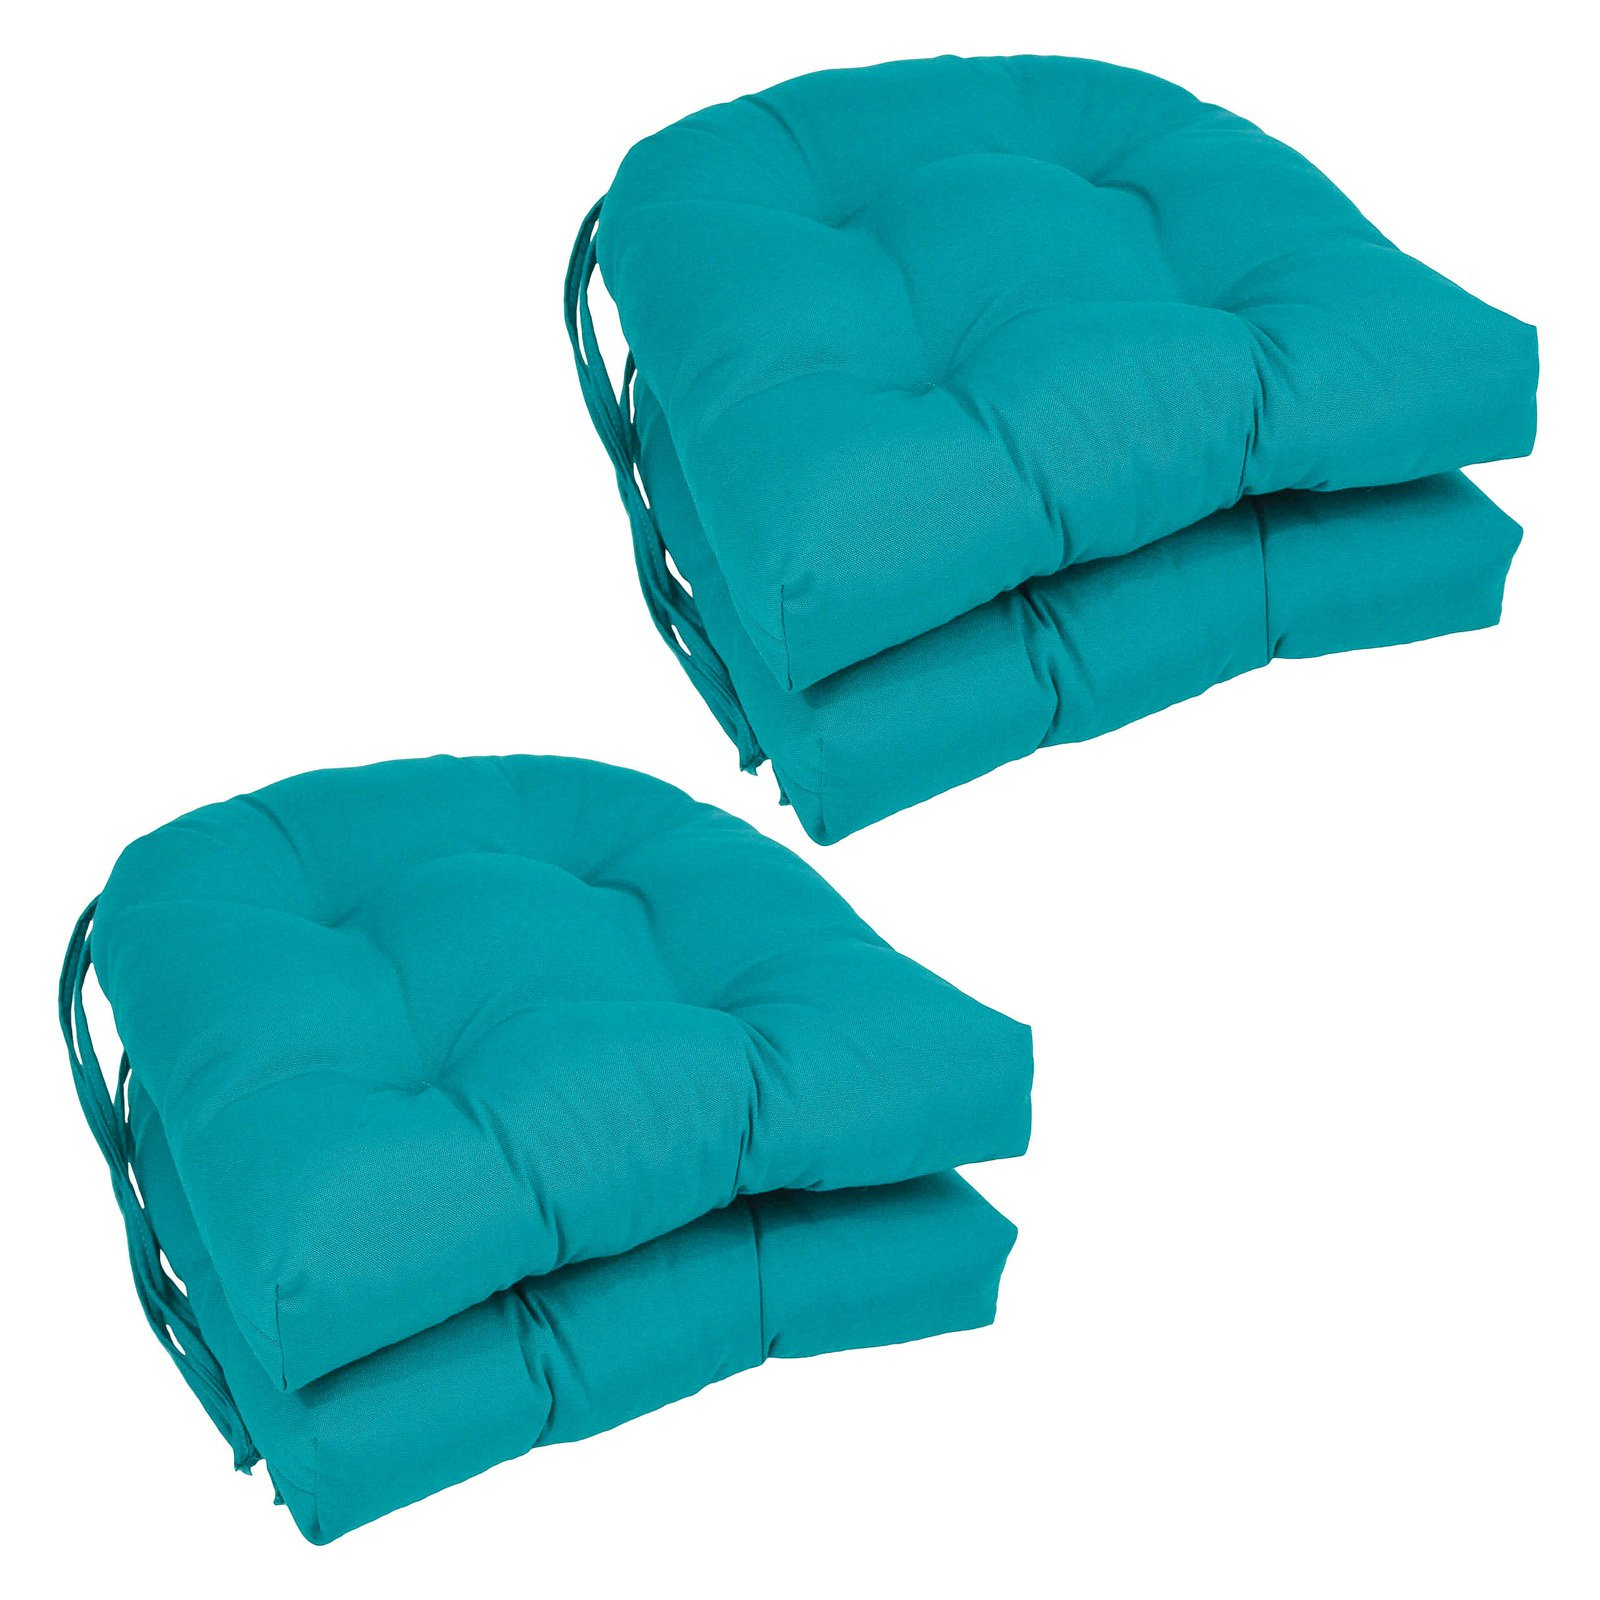 Blazing Needles U-Shape 16 x 16 in. Twill Dining Chair Cushions - Set of 4